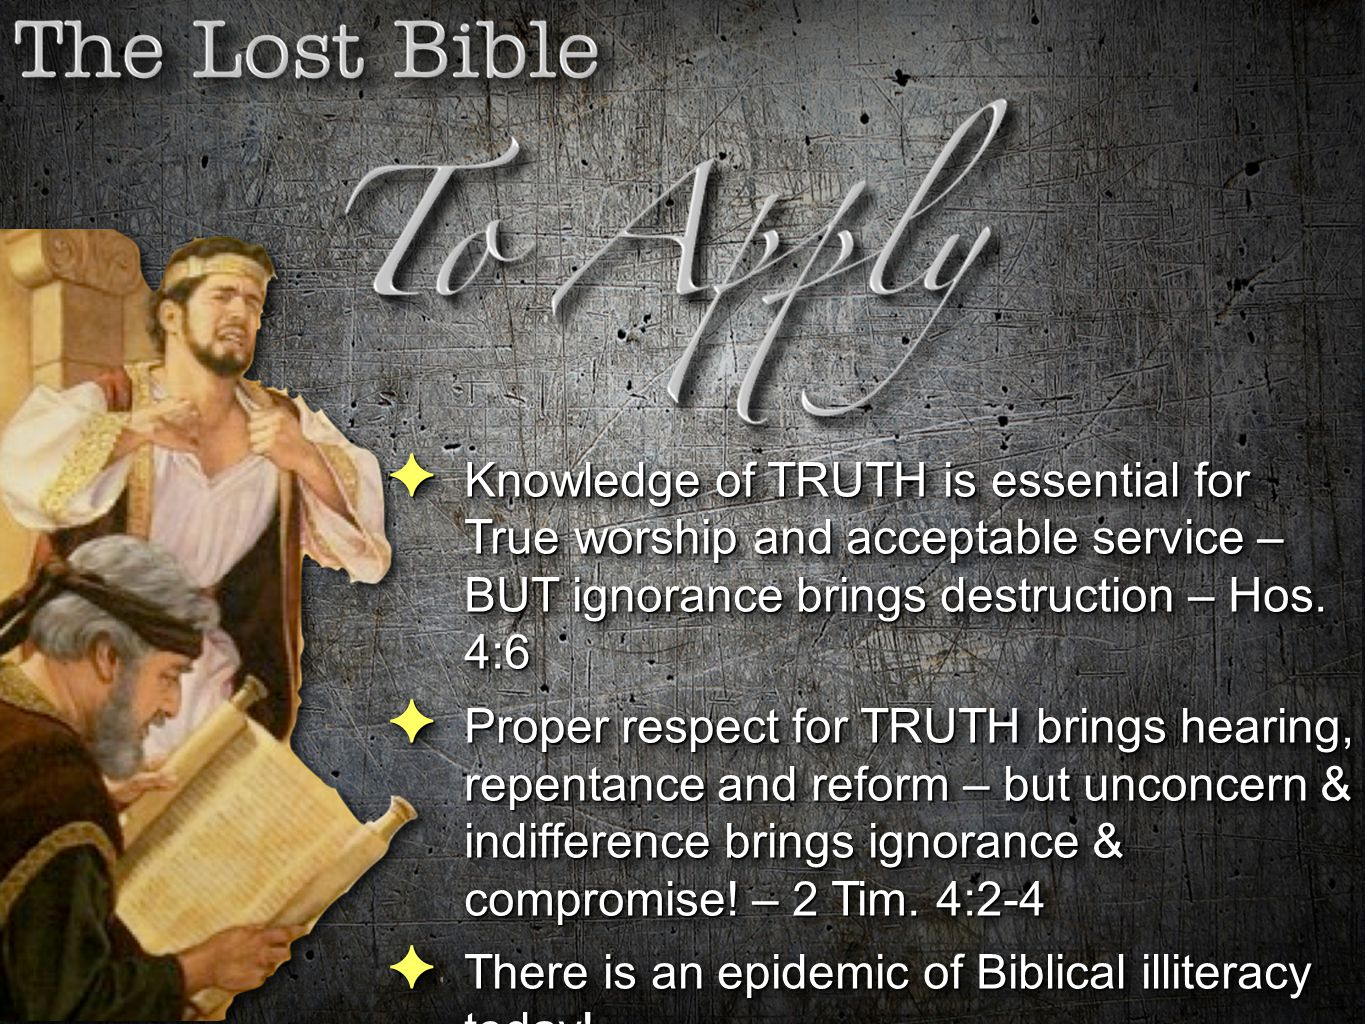 There is an epidemic of Biblical illiteracy today! -